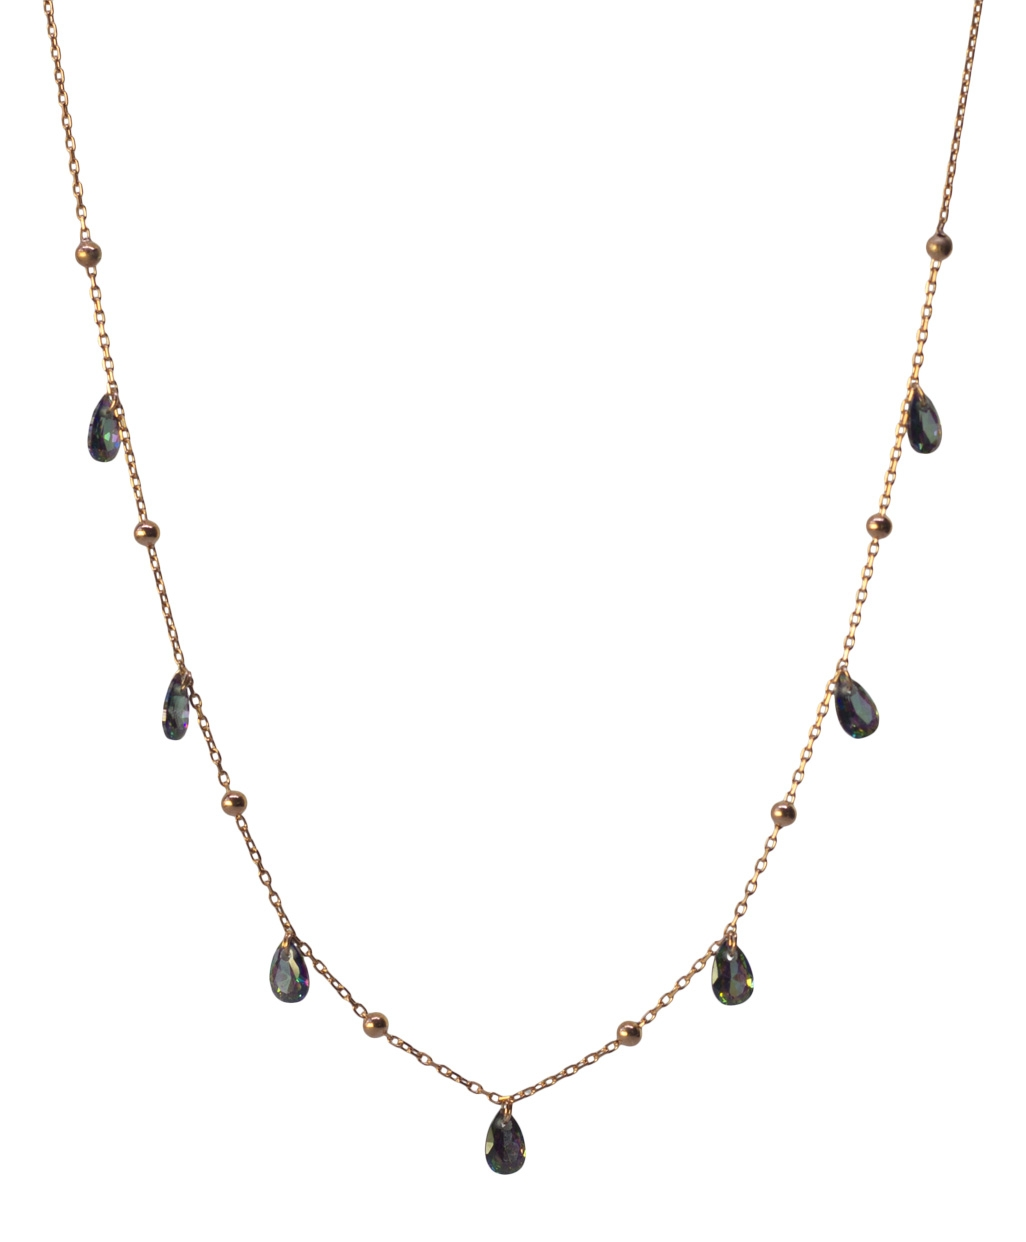 Anthracite Zircon with Balls Silver Necklace